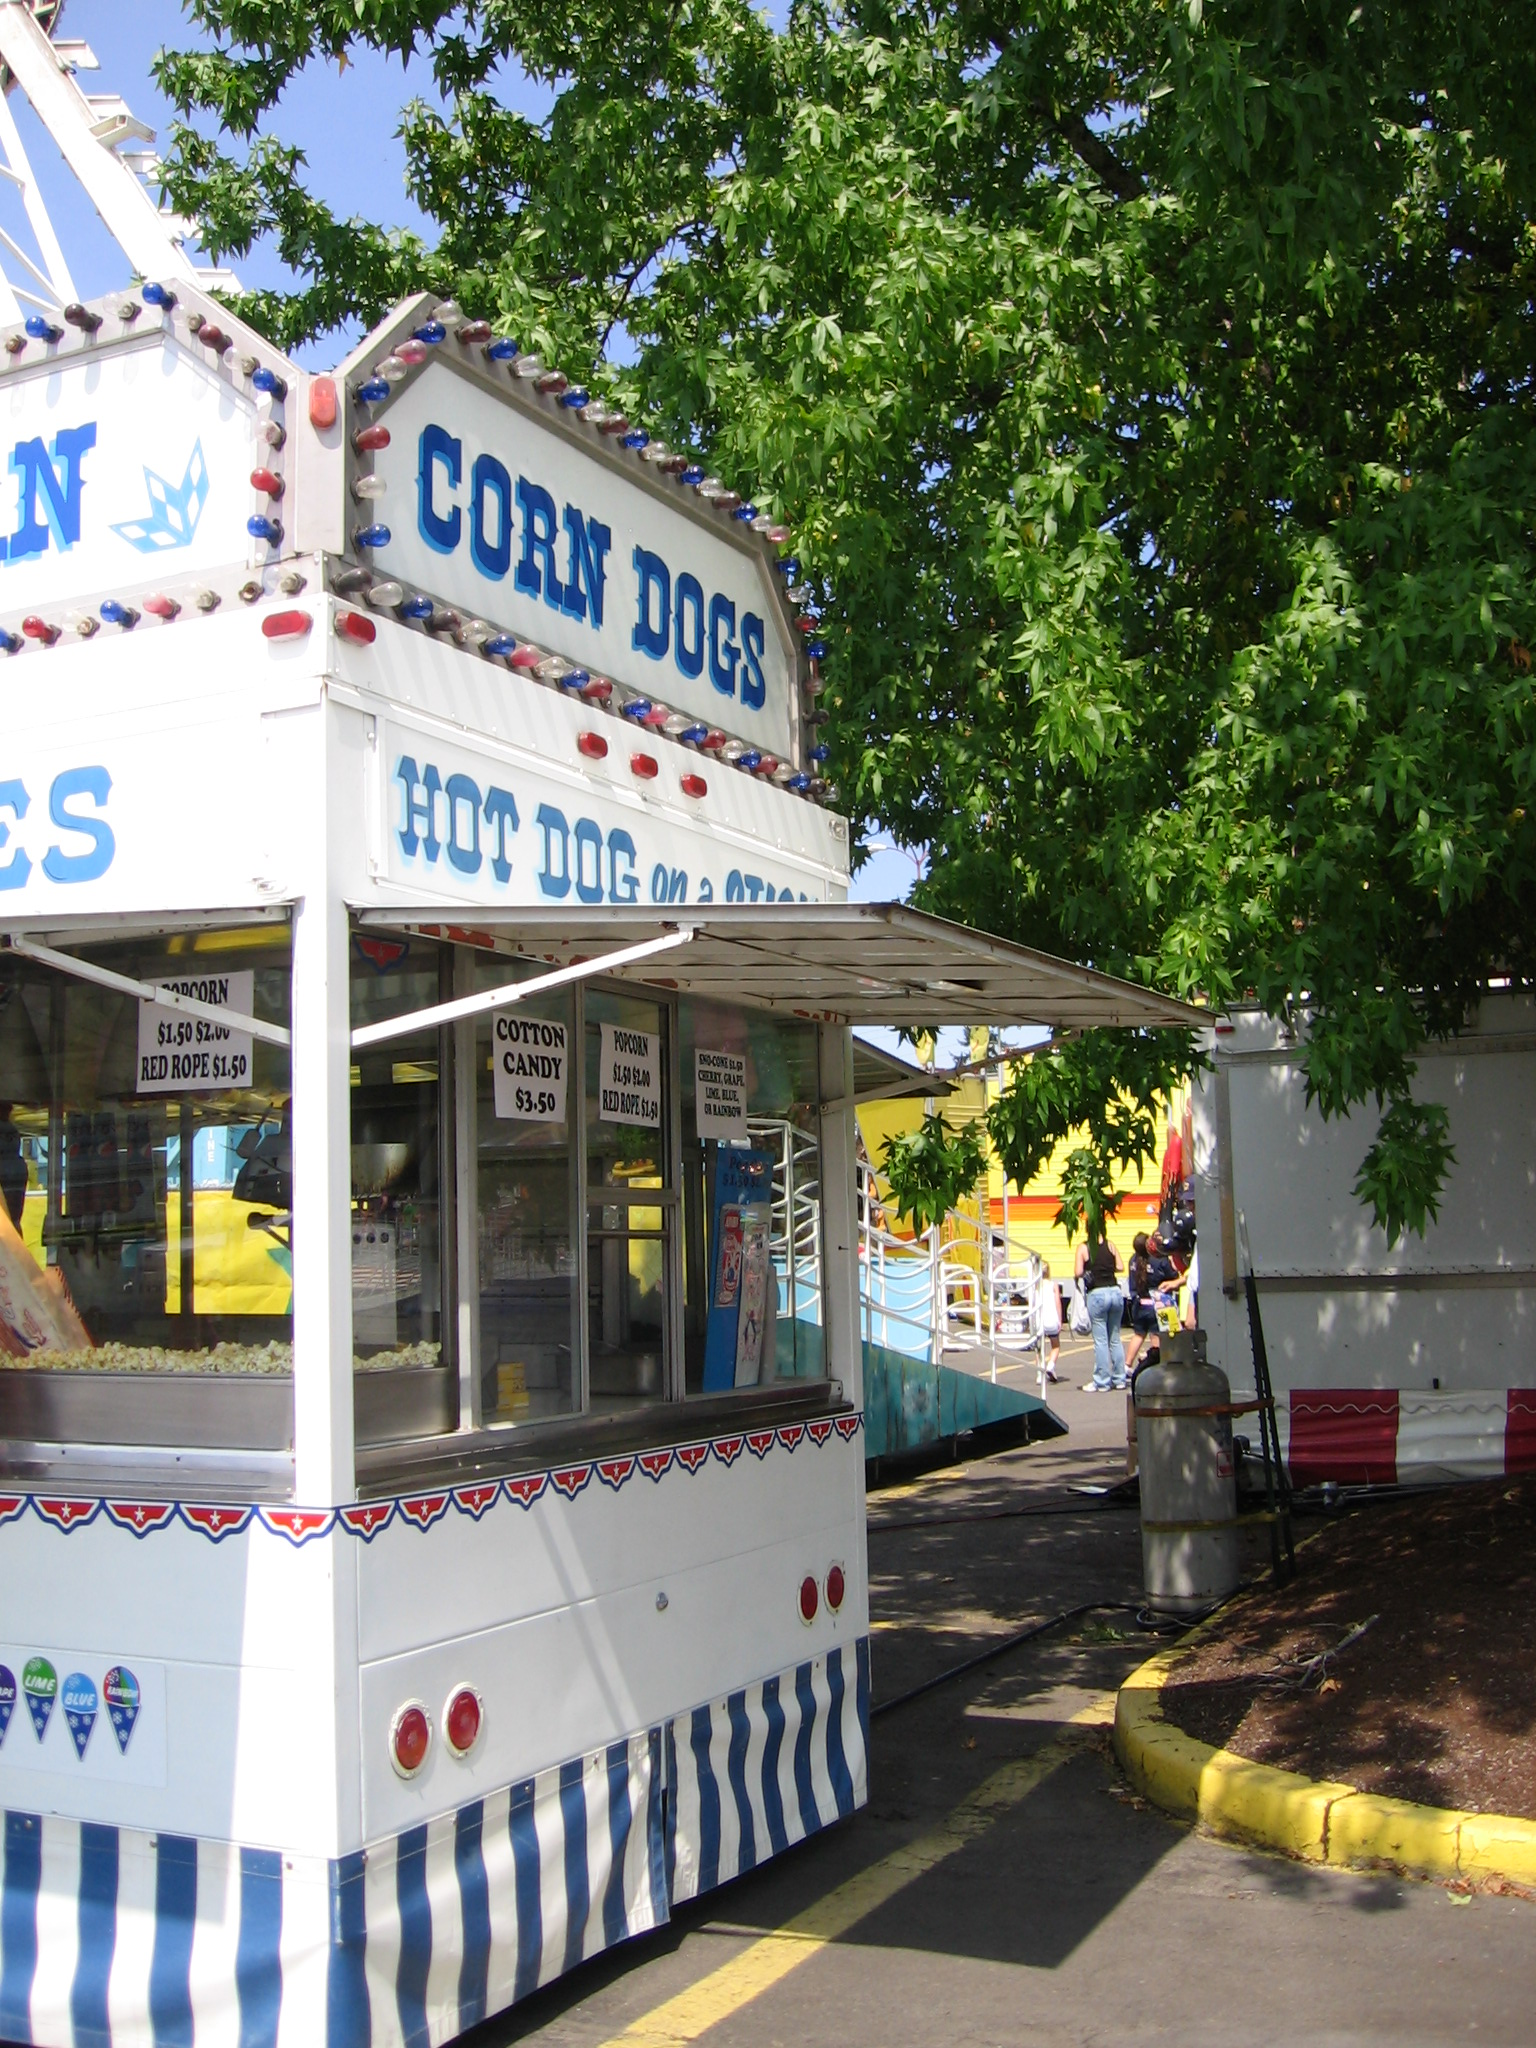 Corndog stand at a fair